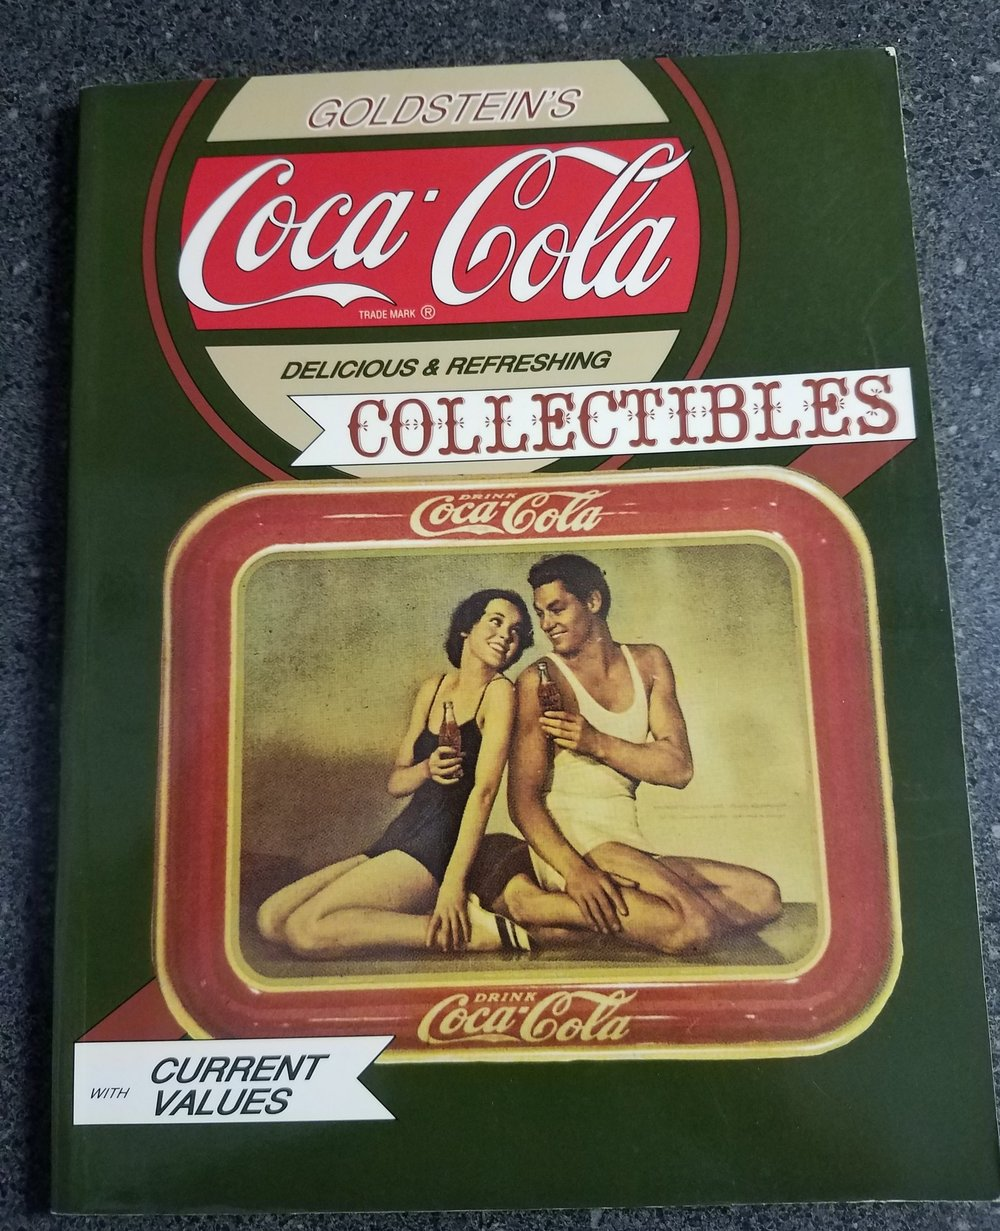 Coca-Cola Collectibles  - Goldstein's 1991Another great source for Cola-Cola items, but with outdated prices.